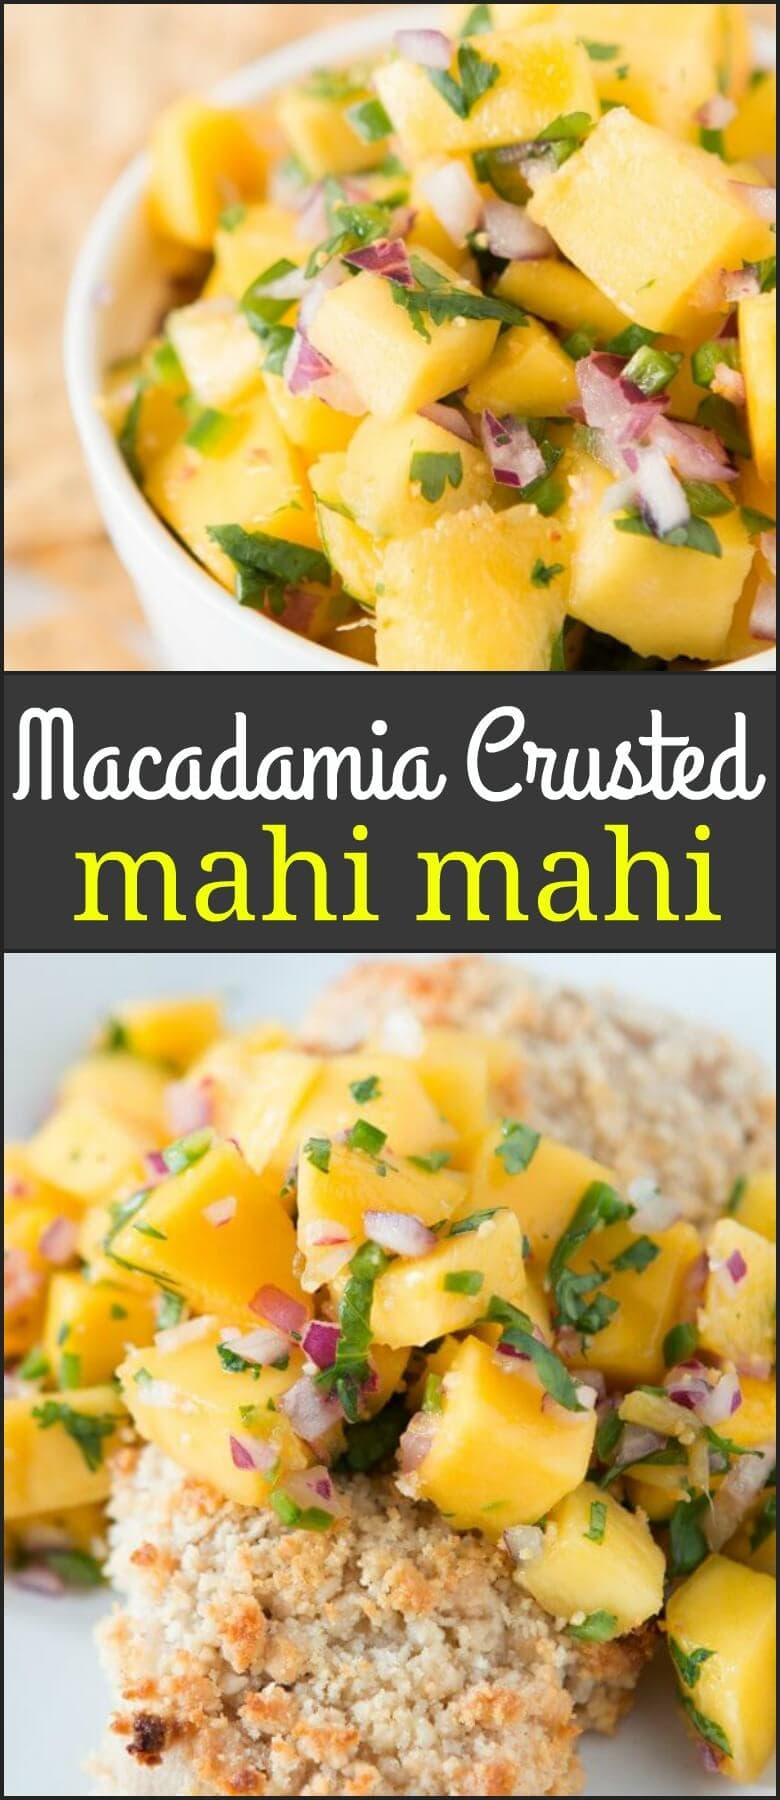 We may not being going to Hawaii this month but at least we can make this delicious macadamia crusted mahi mahi with mango salsa! ohsweetbasil.com